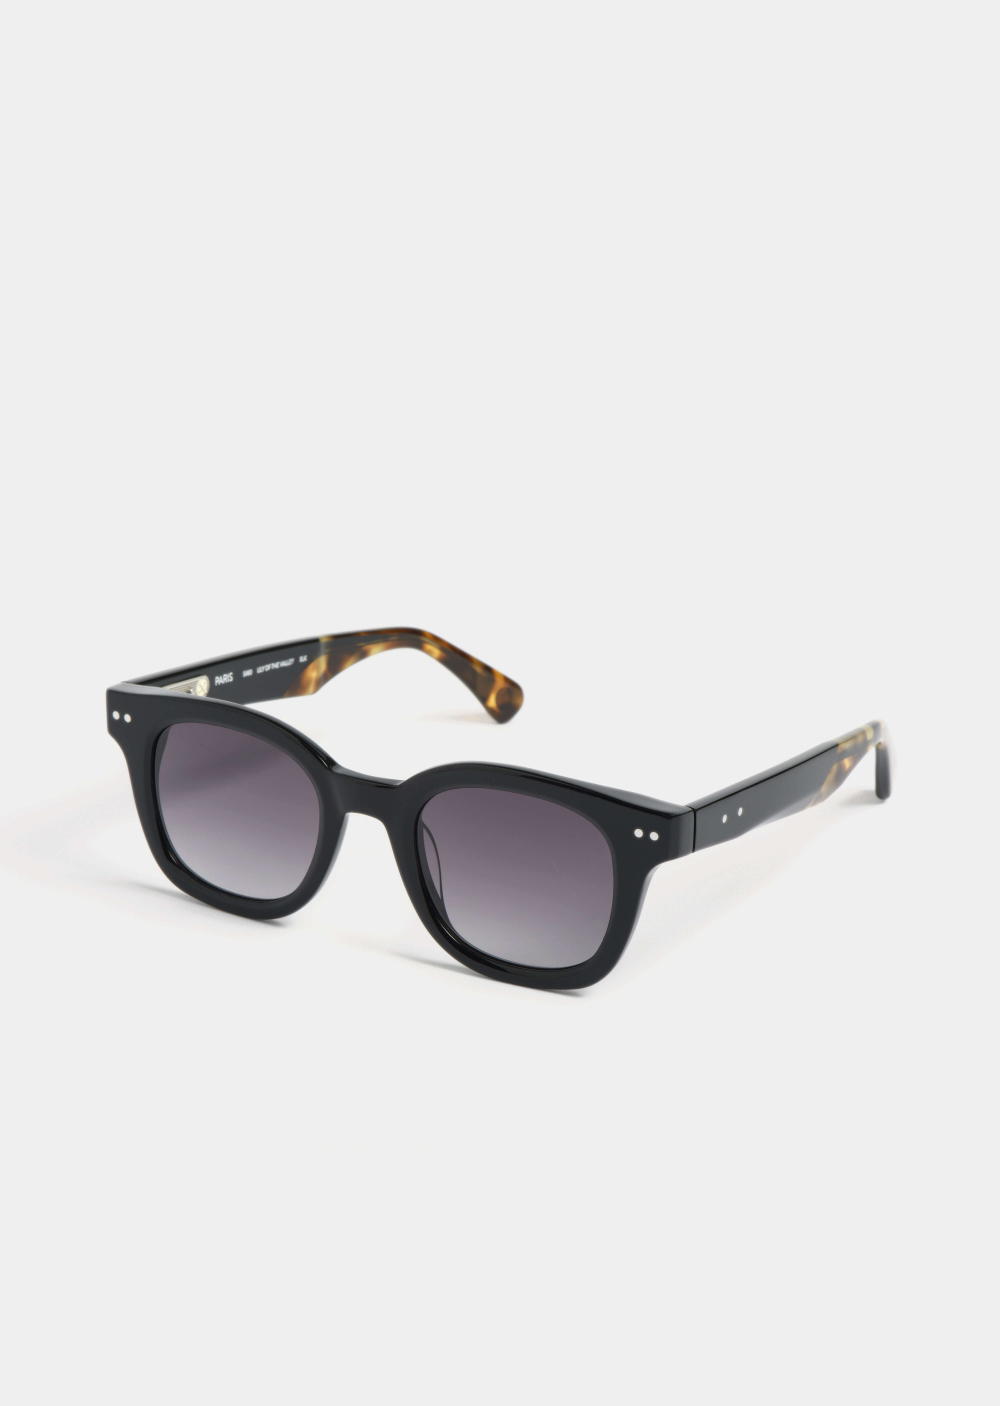 PETER AND MAY -  - S80 Lily of The Valley Black Fade Black